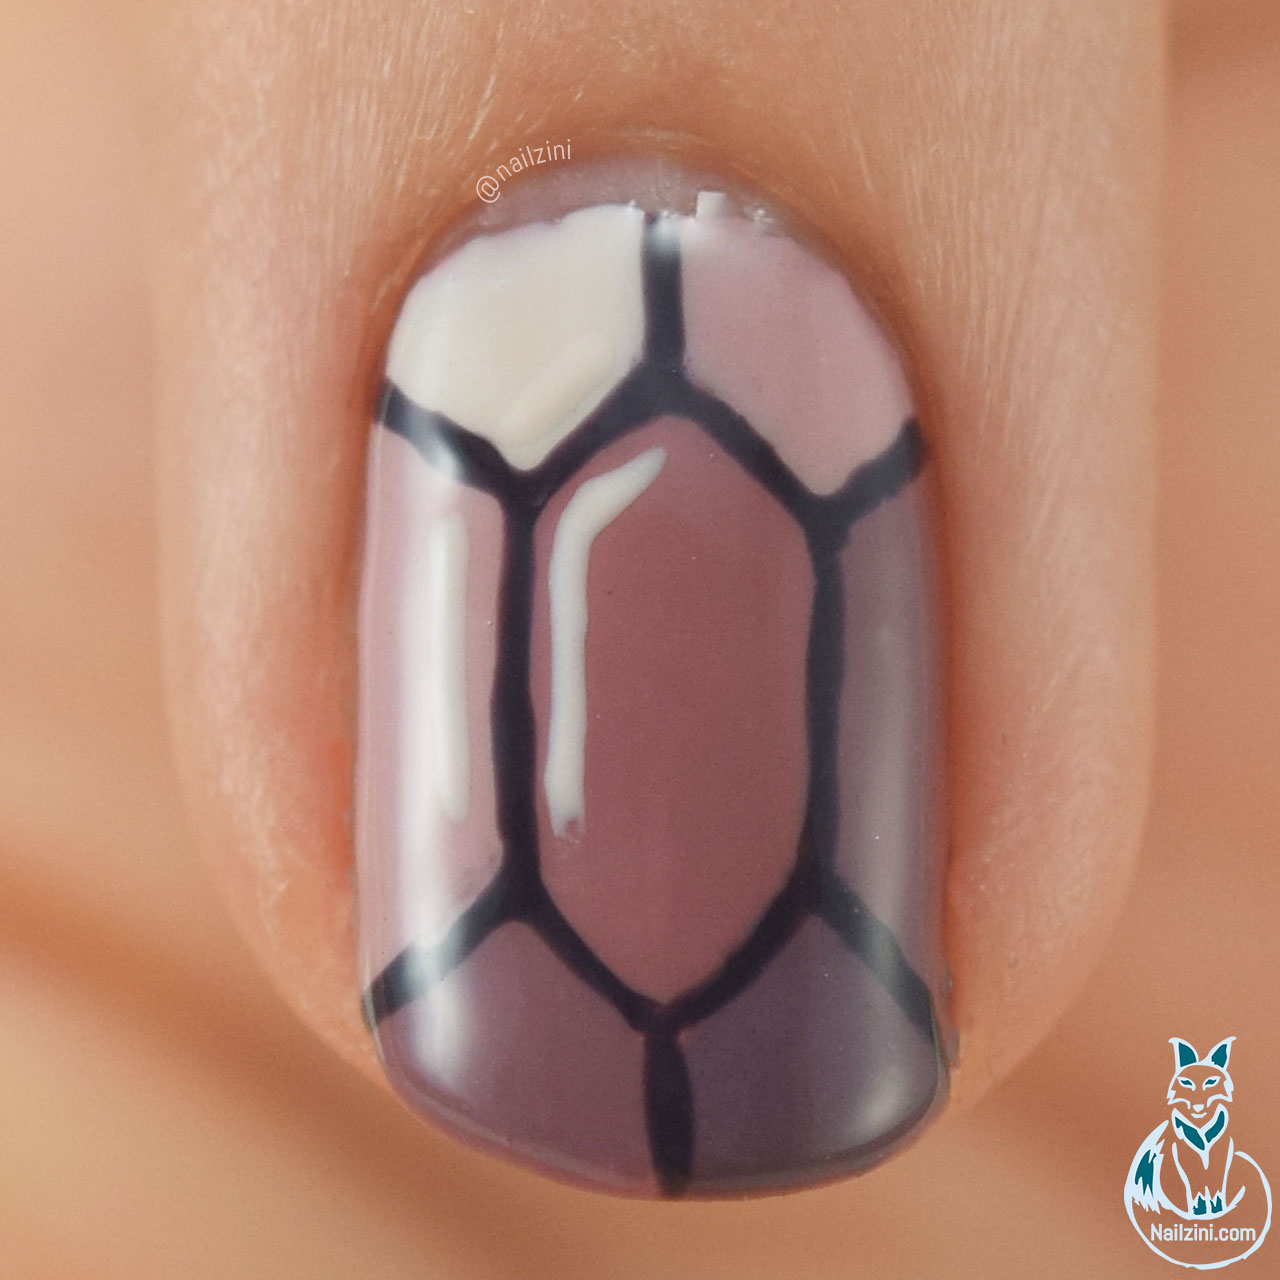 Light Ruby Madam Glam Nailzini